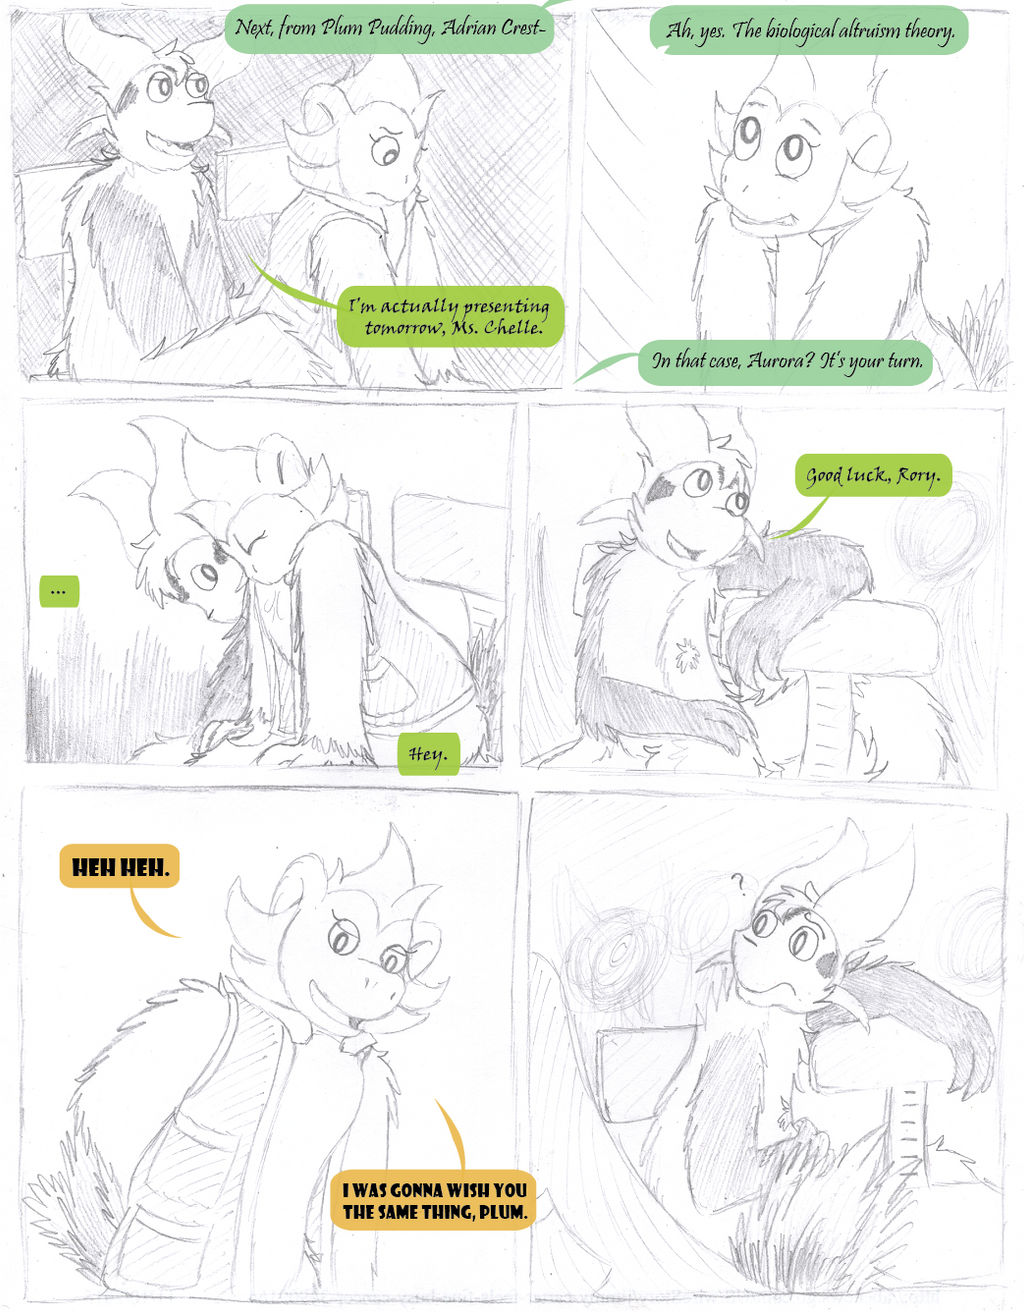 How to Restrain Your Chespin ~ Page 1 of 9